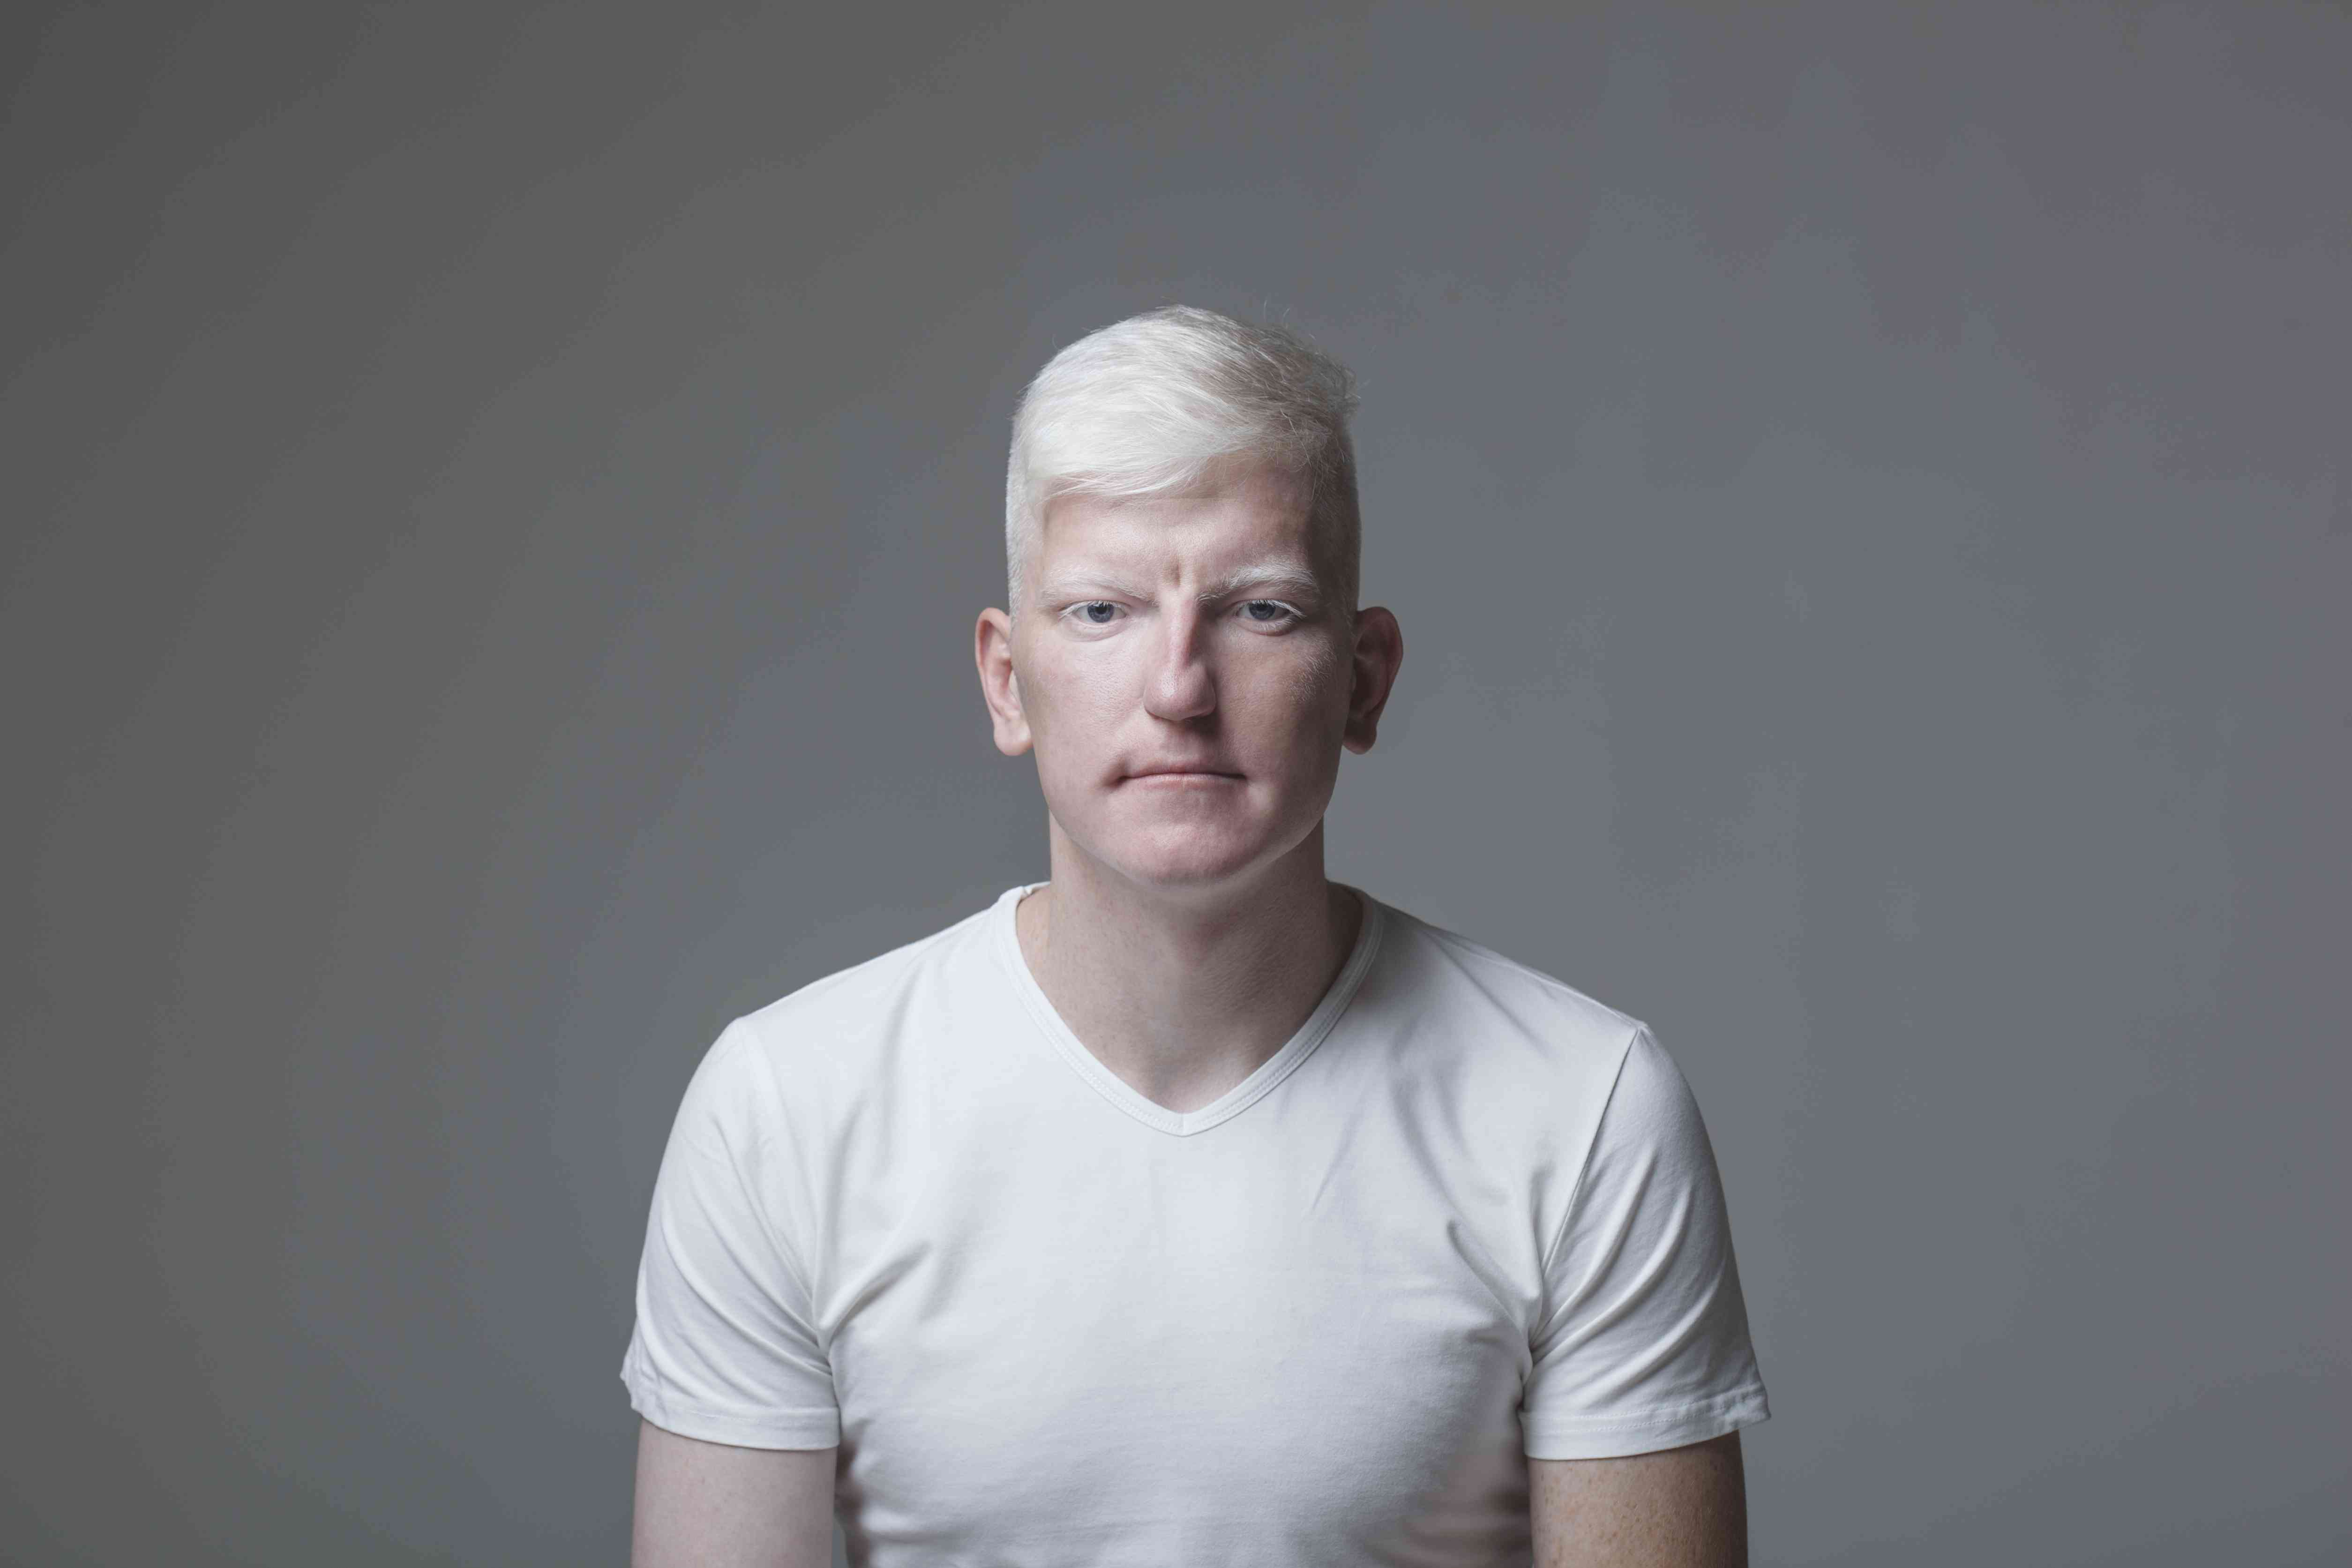 Portrait of young albino man against gray background